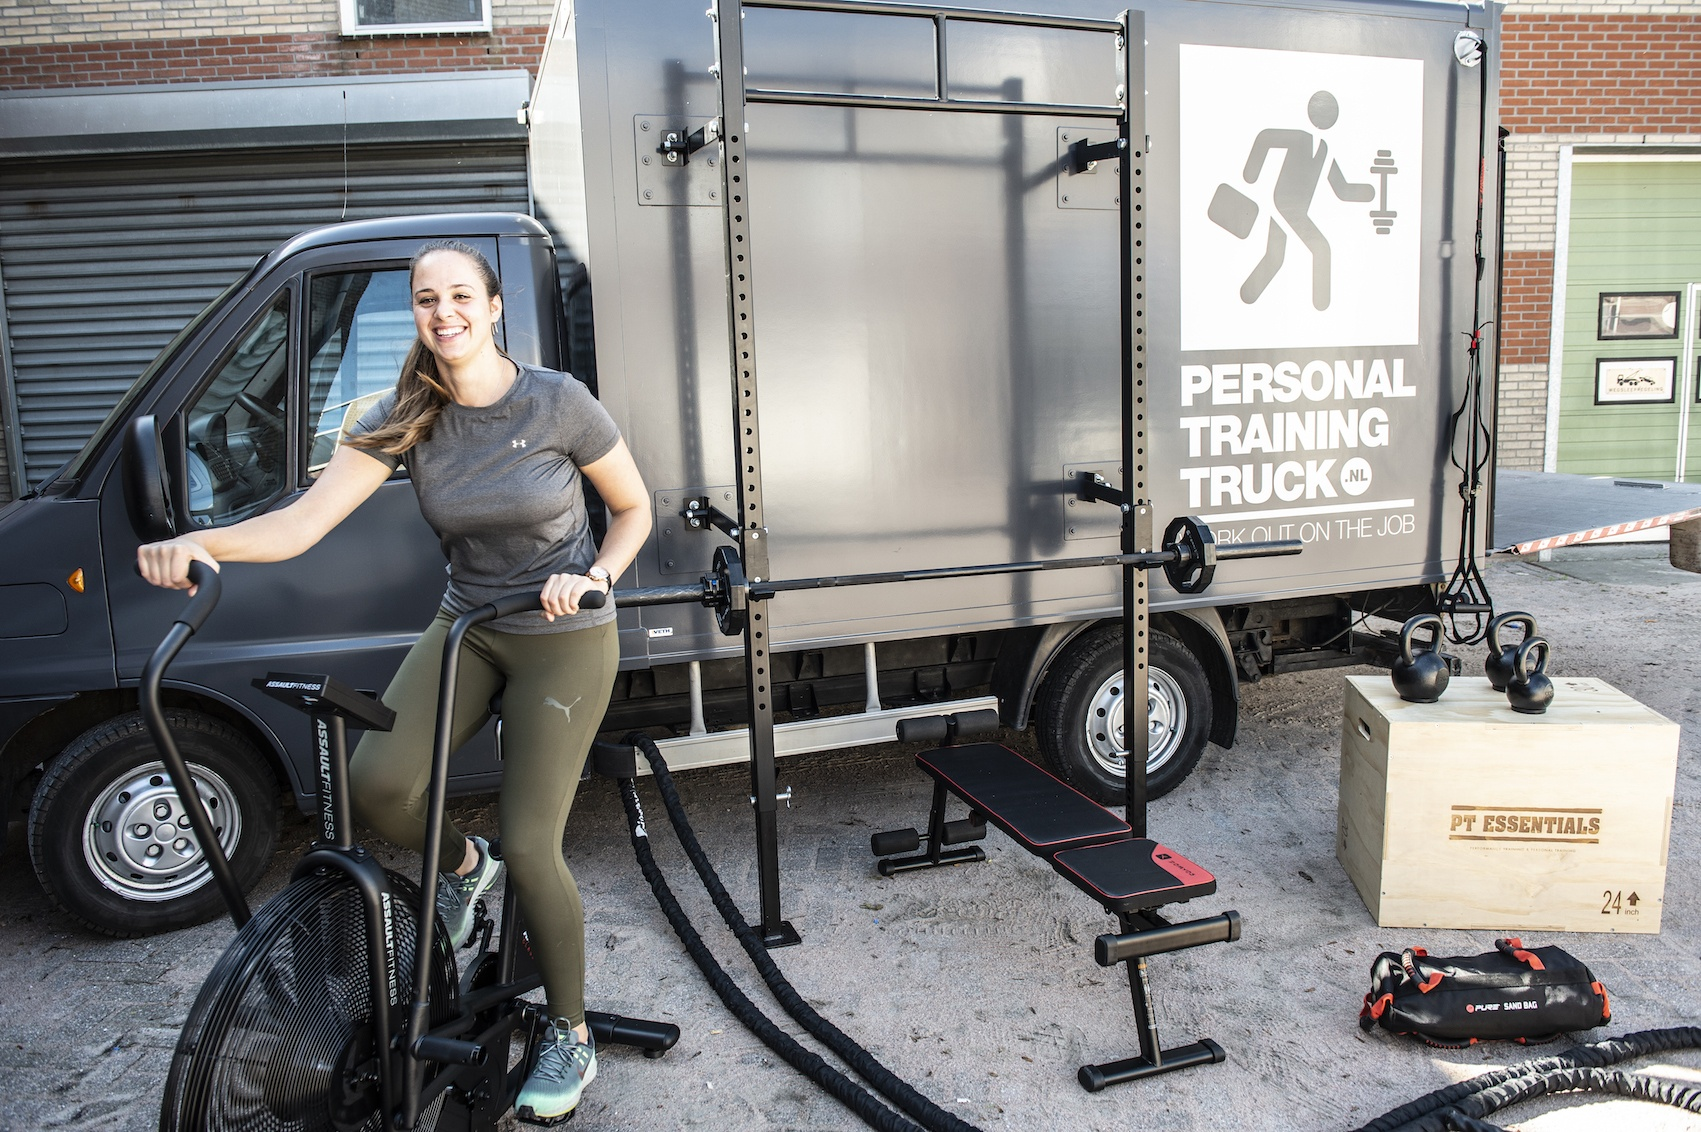 Personal Training Truck